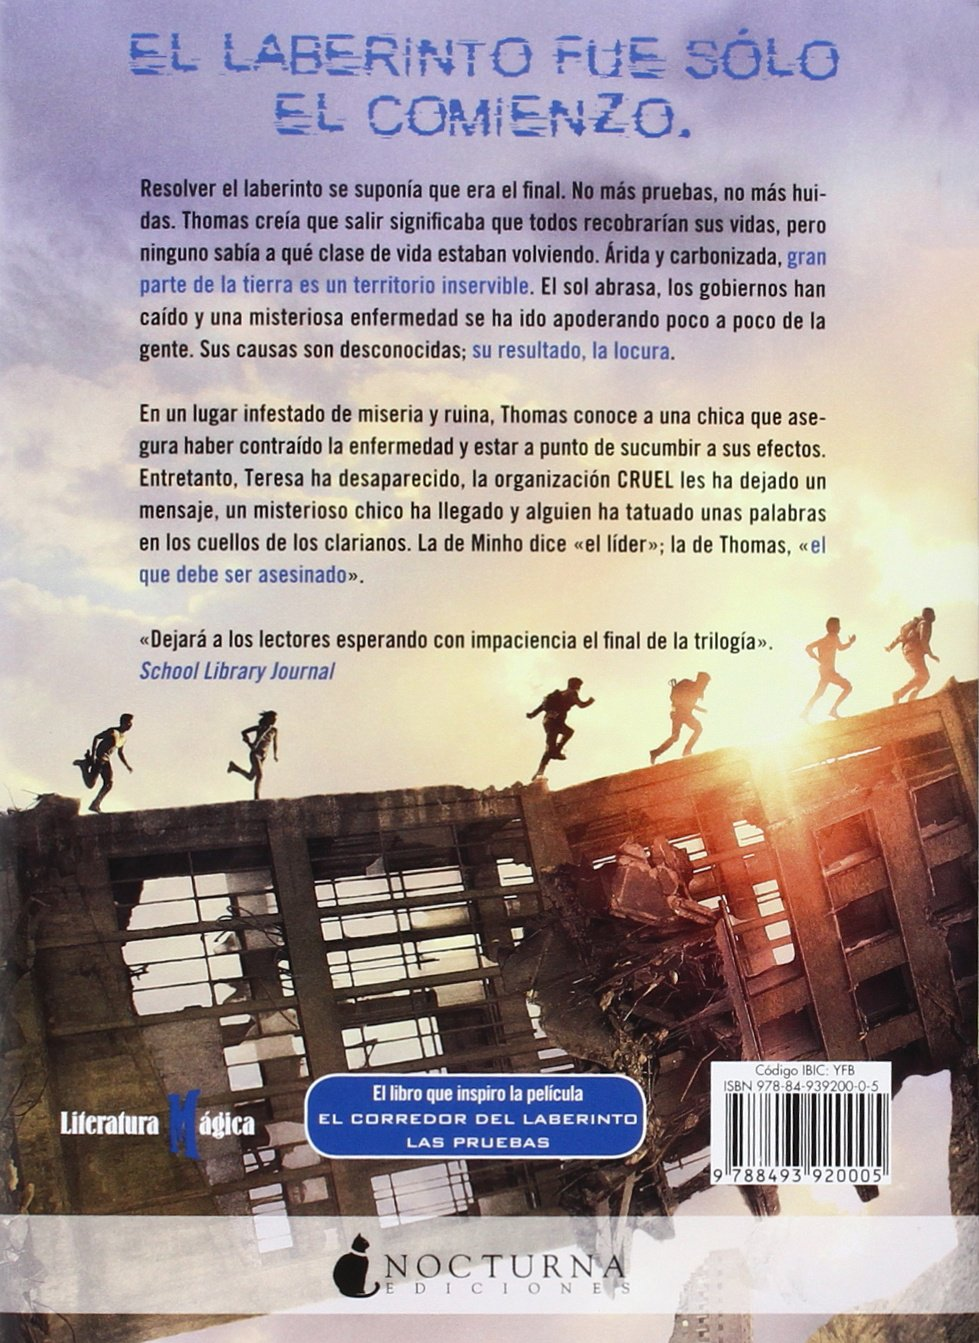 Las pruebas (Literatura Mágica): Amazon.es: James Dashner, Noemí Risco  Mateo: Libros